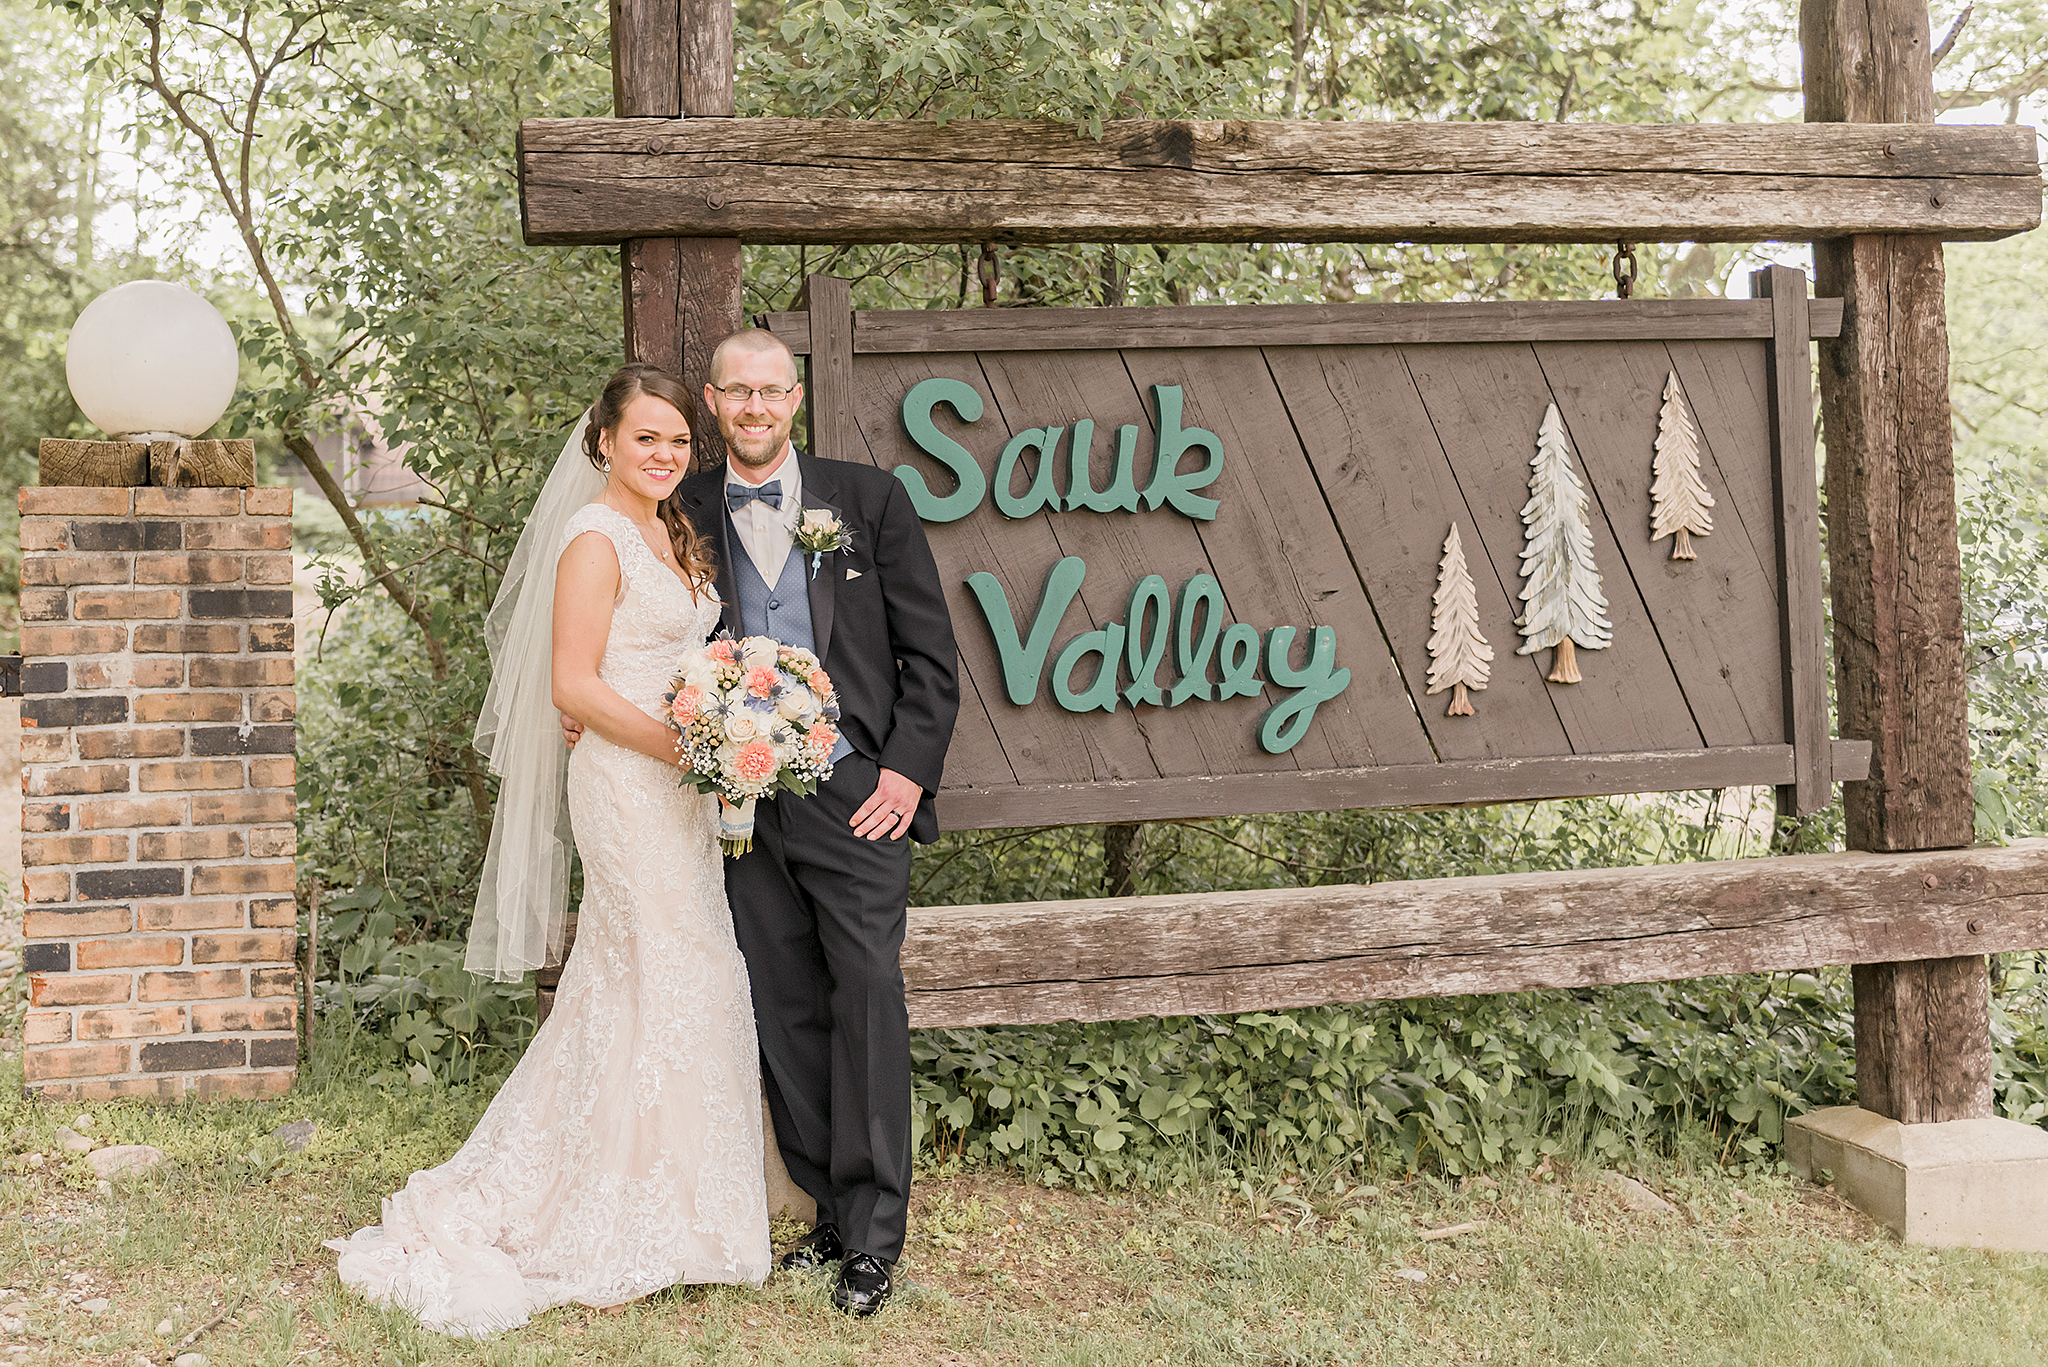 Lindsay-Adkins-Photography-Michigan-Wedding-Photographer-Sauk-Valley-Brooklyn-Michigan43